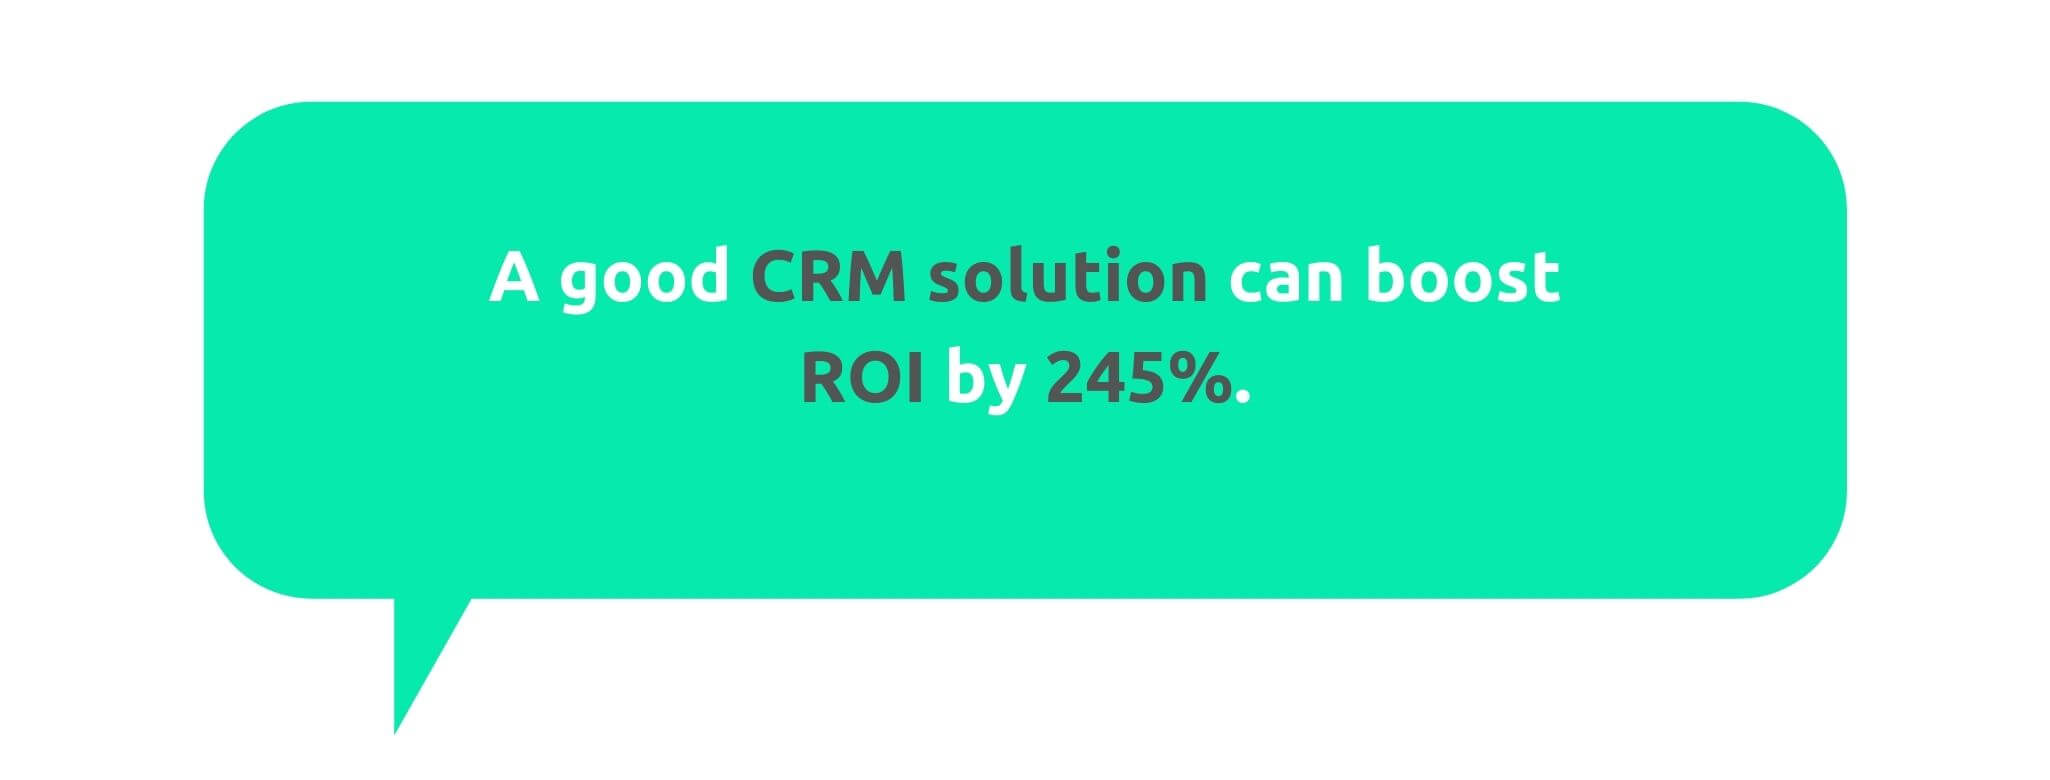 CRM Increases ROI - 50+ CRM Stats - Replyco Helpdesk Software for eCommerce